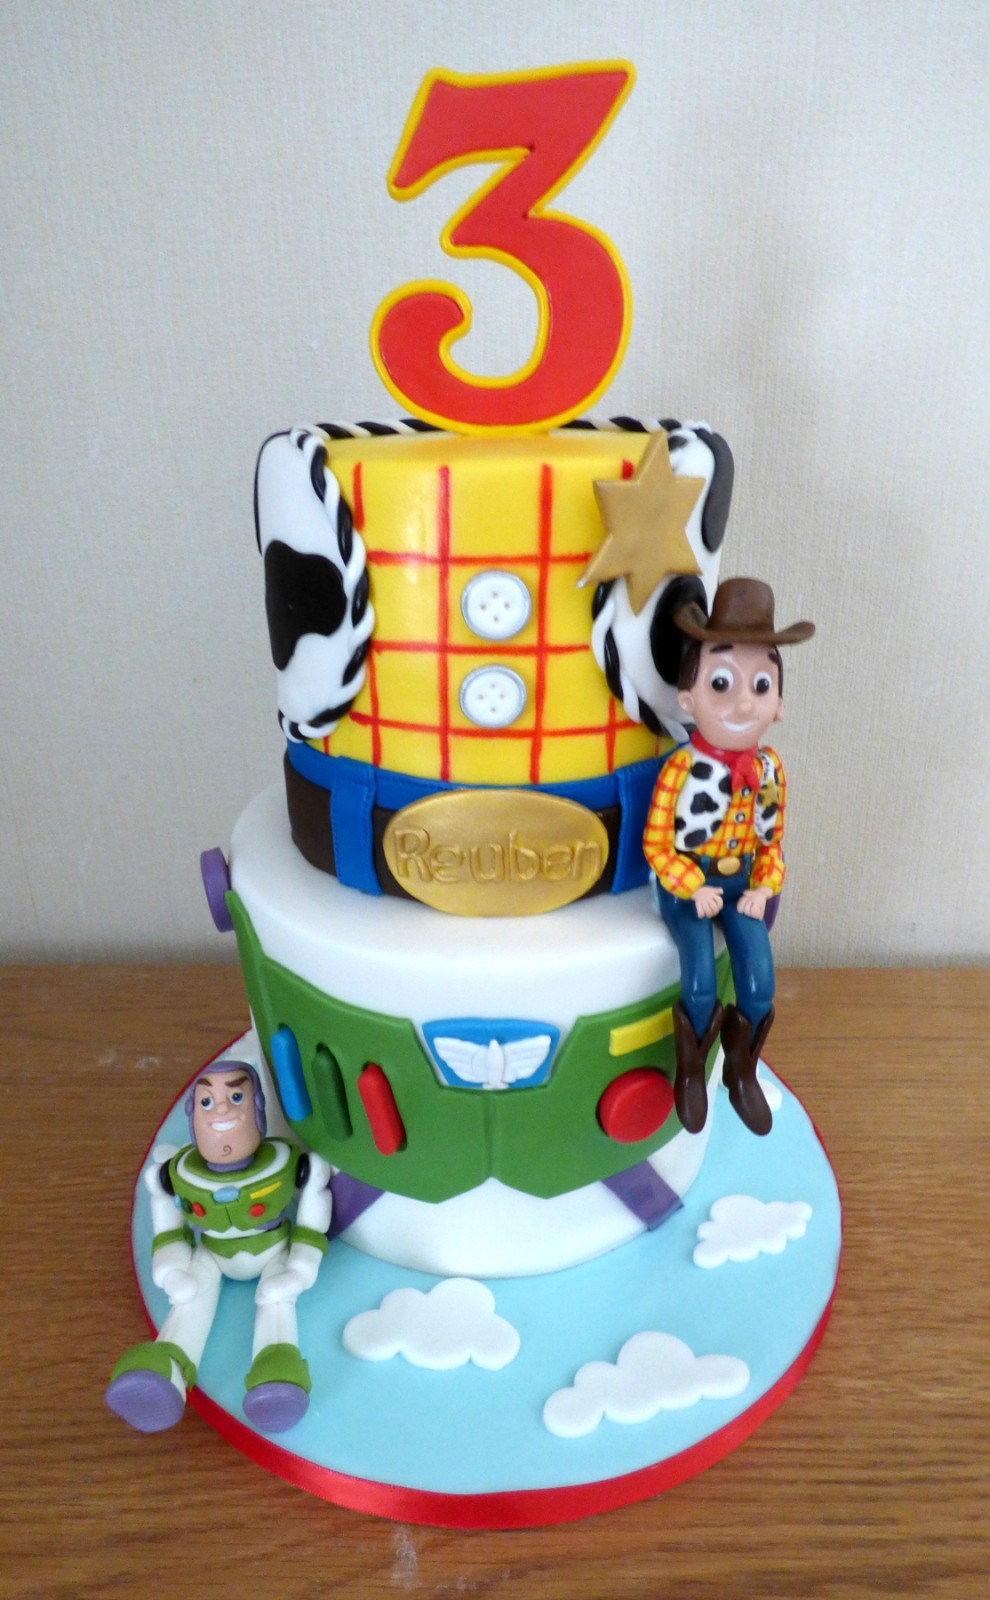 Awe Inspiring 2 Tier Toy Story Birthday Cake Woody And Buzz Themed Susies Cakes Personalised Birthday Cards Rectzonderlifede